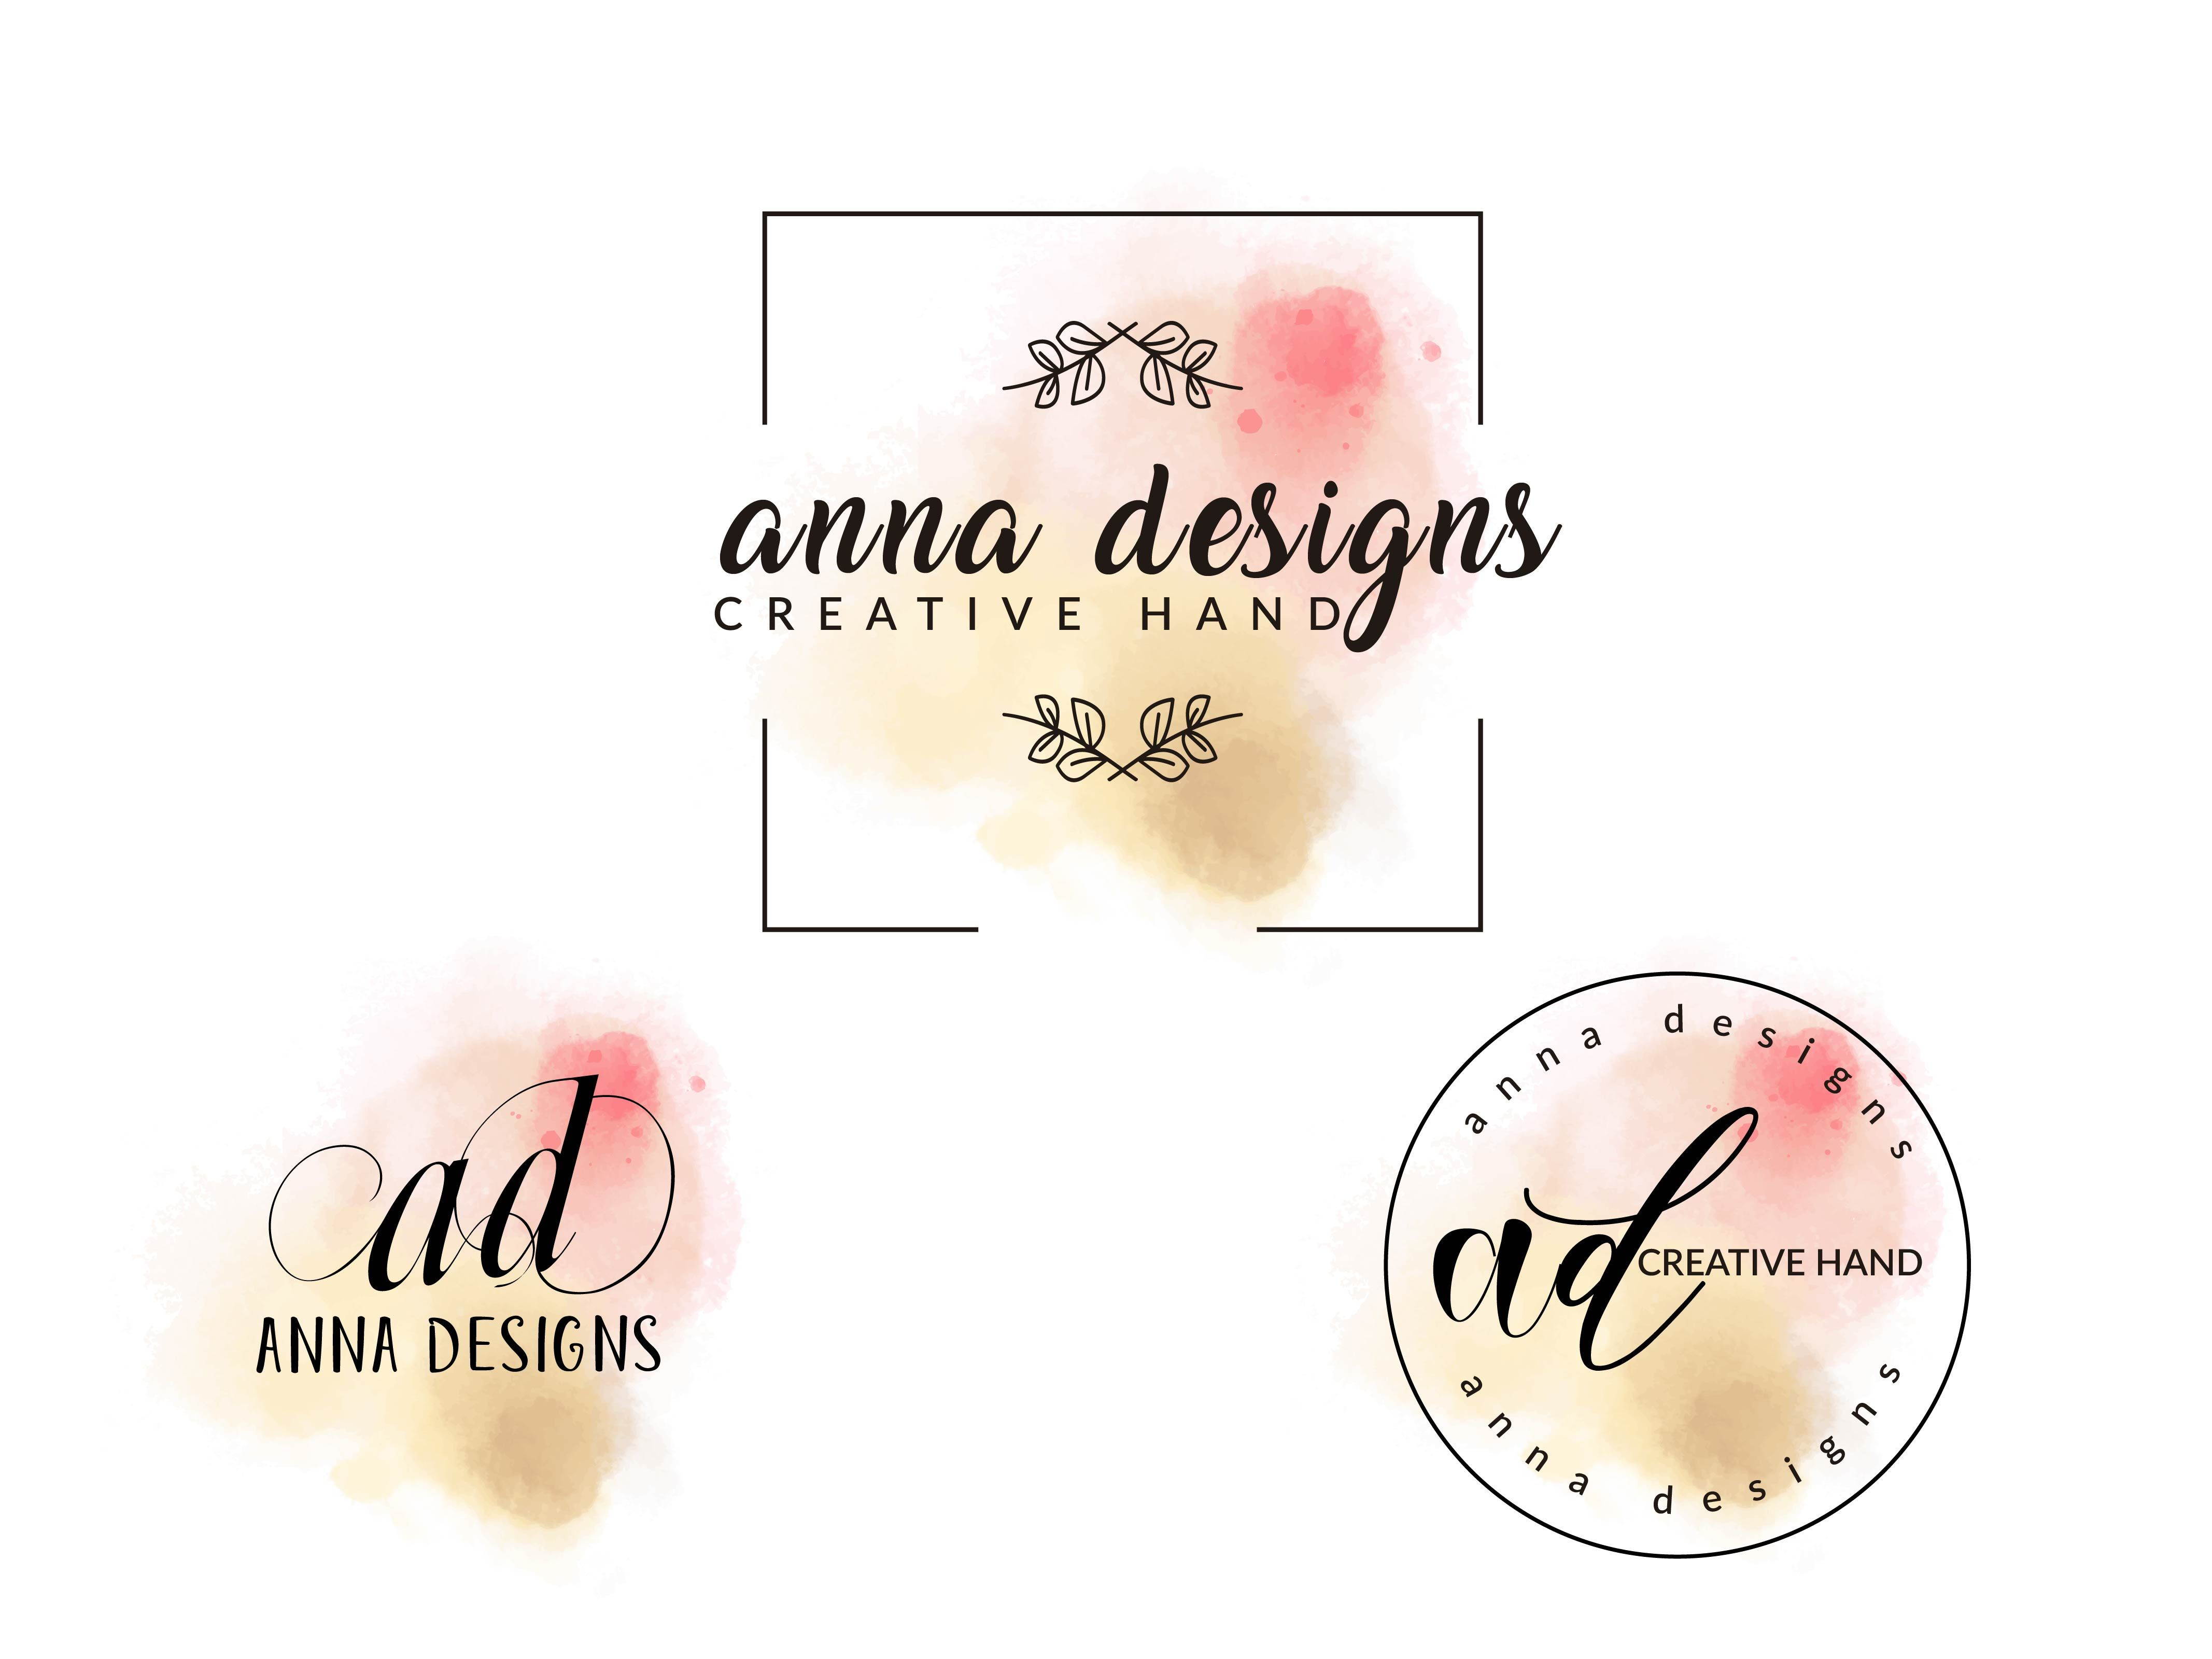 I Will Design Feminine Watercolor Logo With Free Source File With In 24 Hours Watercolor Logo Design Watercolor